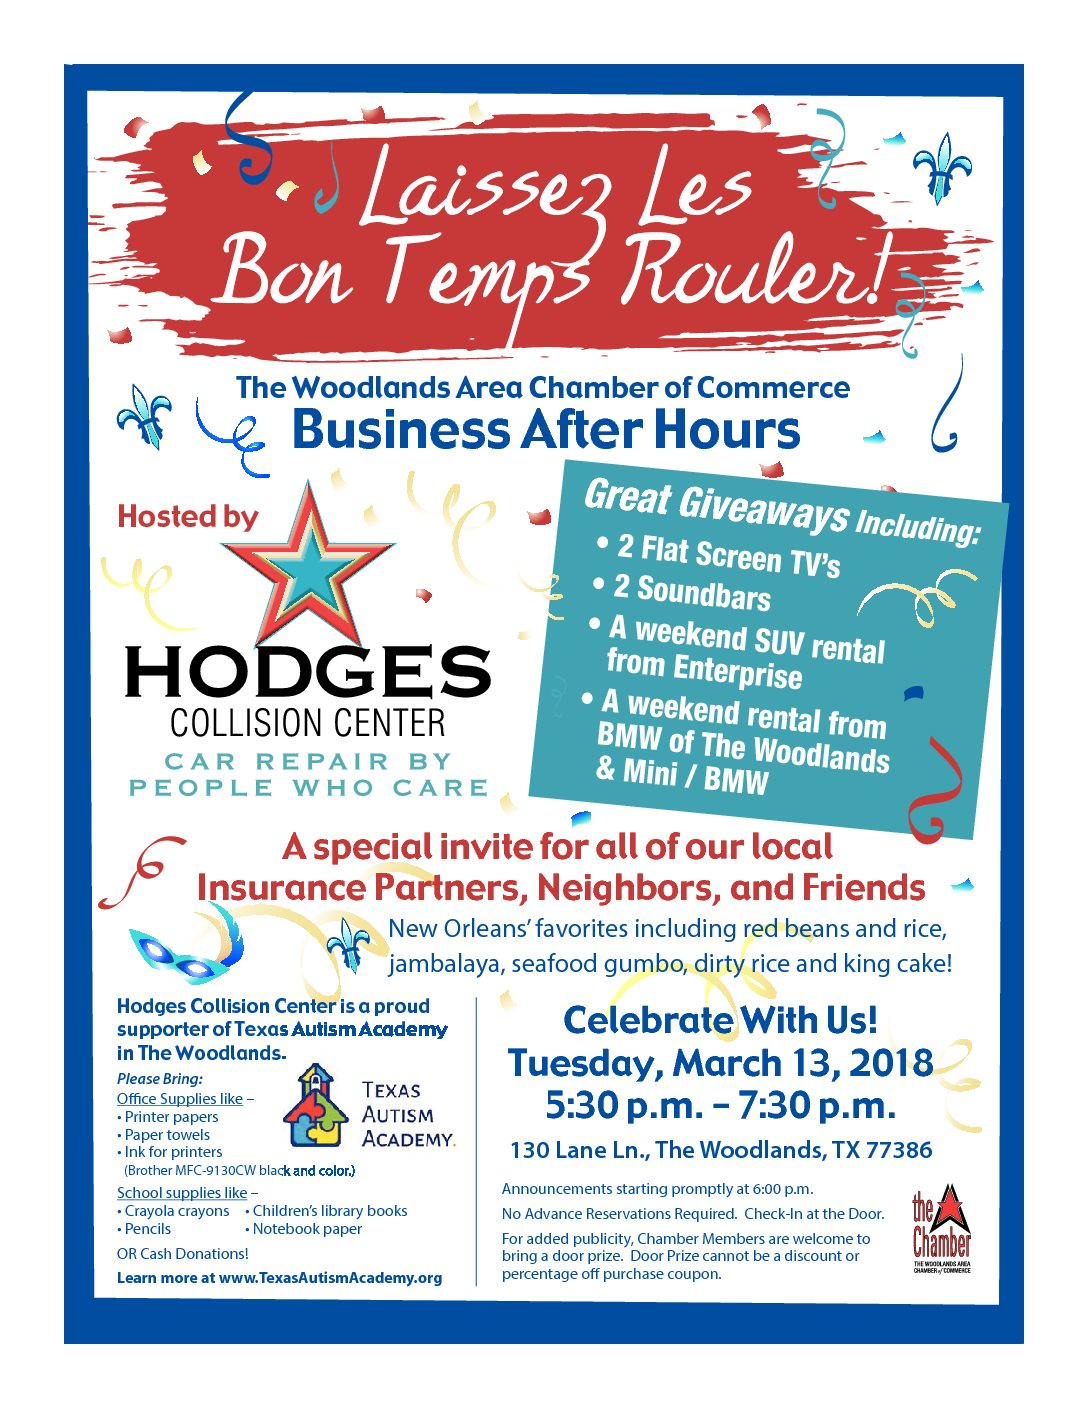 HODGES Collision Center The Woodlands Chamber Business After Hours Event